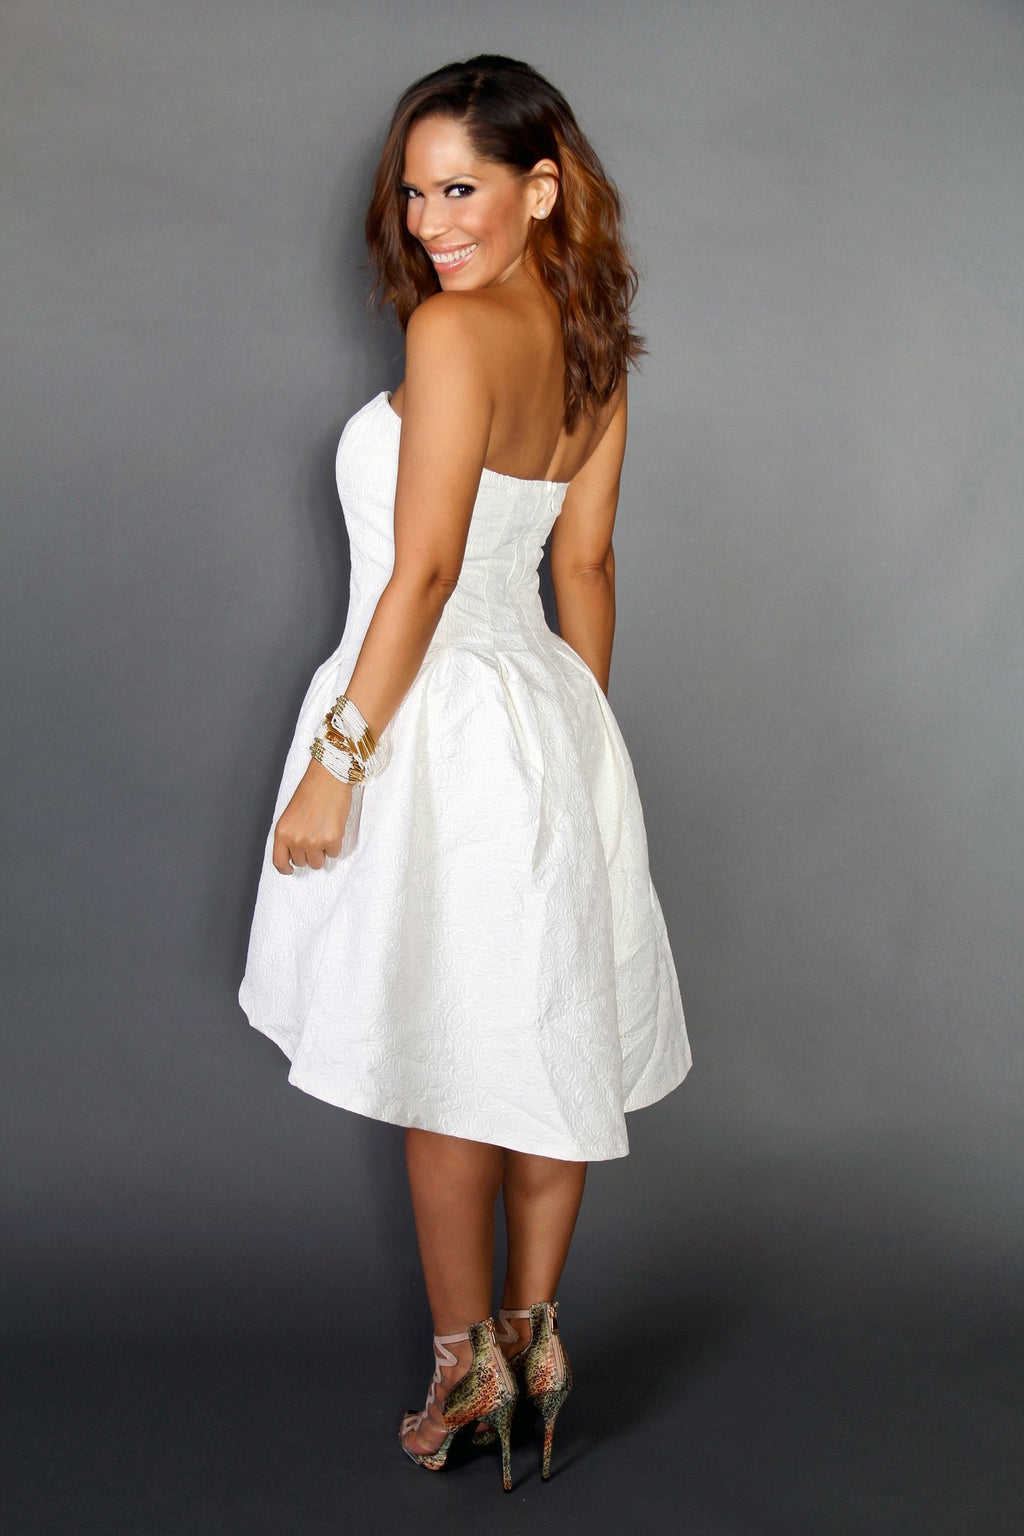 Sophisticated High Low Textured Strapless Cocktail Dress In White - MY SEXY STYLES